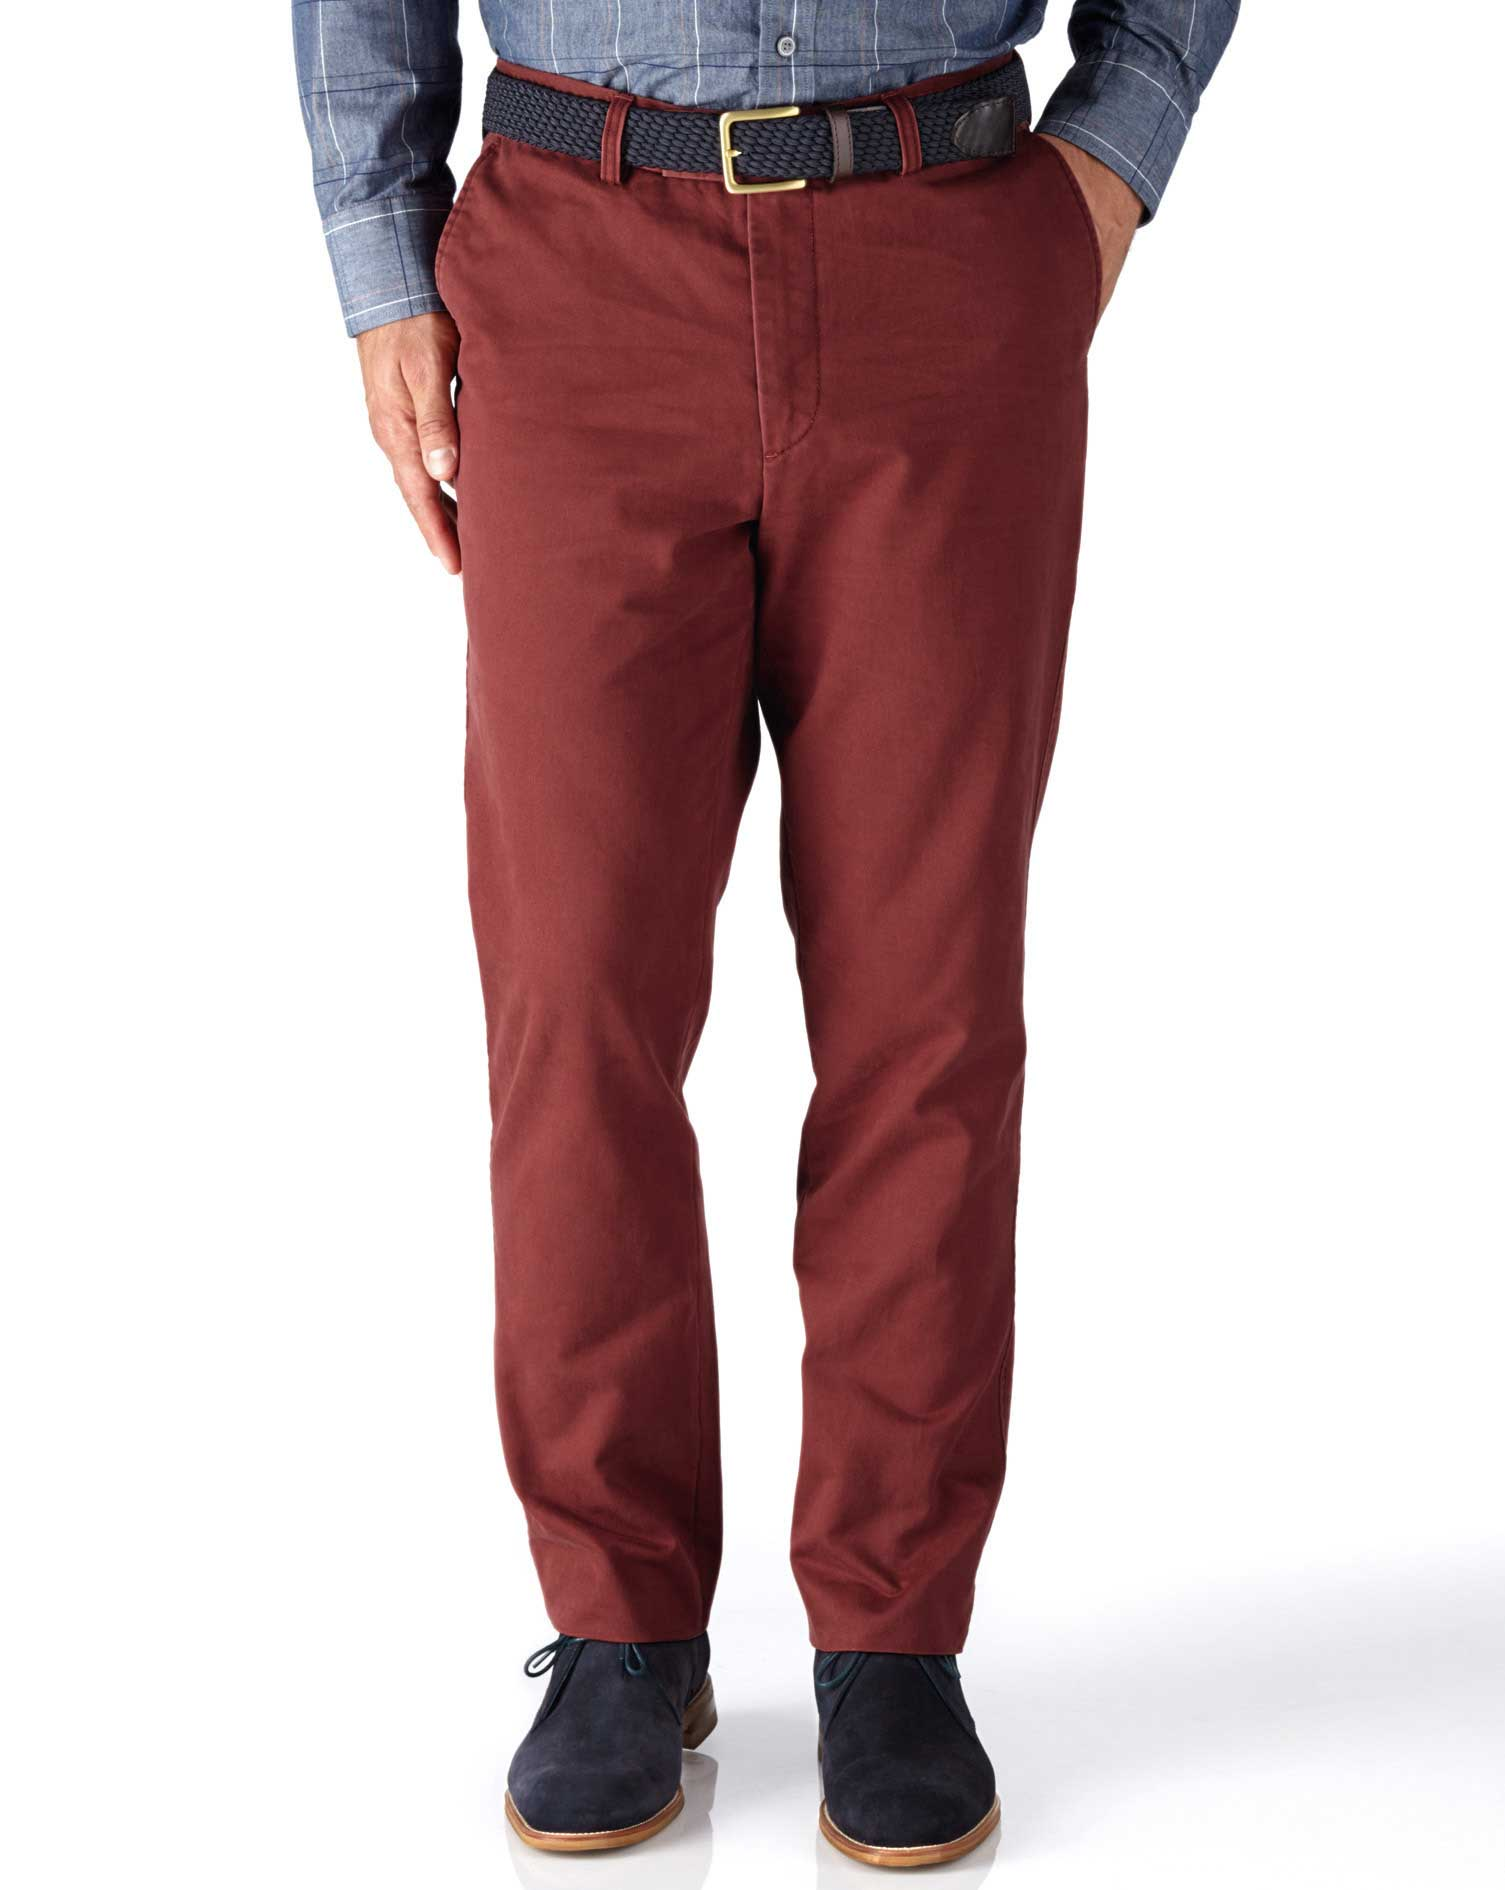 Red Classic Fit Flat Front Cotton Chino Trousers Size W32 L29 by Charles Tyrwhitt